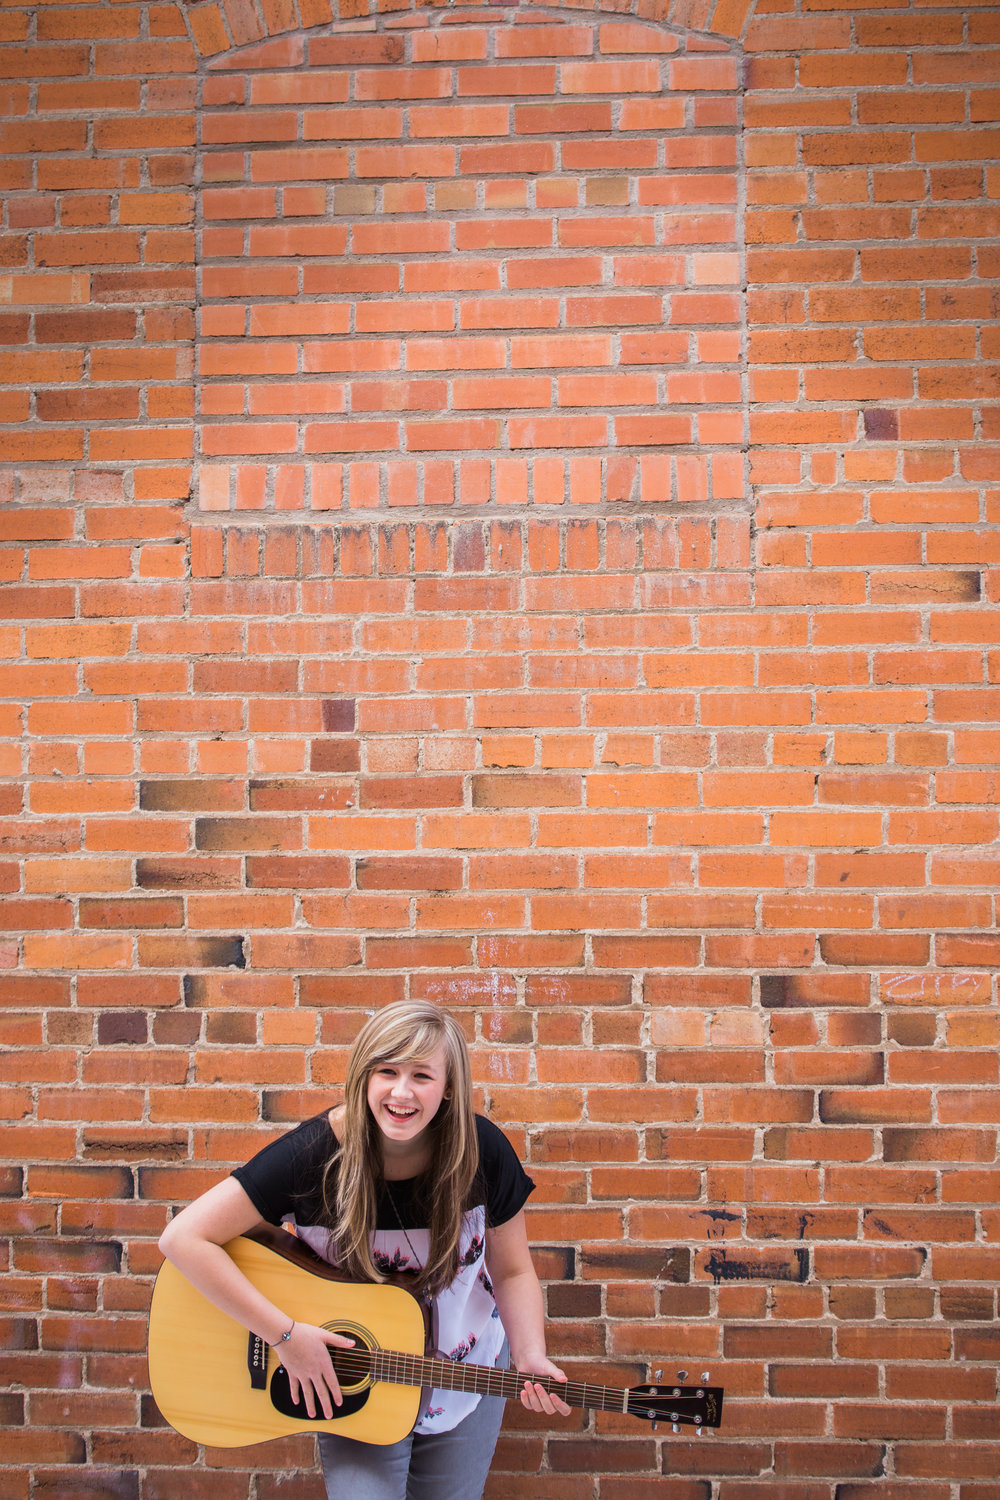 Teenage girl laughing with guitar standing in front of a red brick wall.